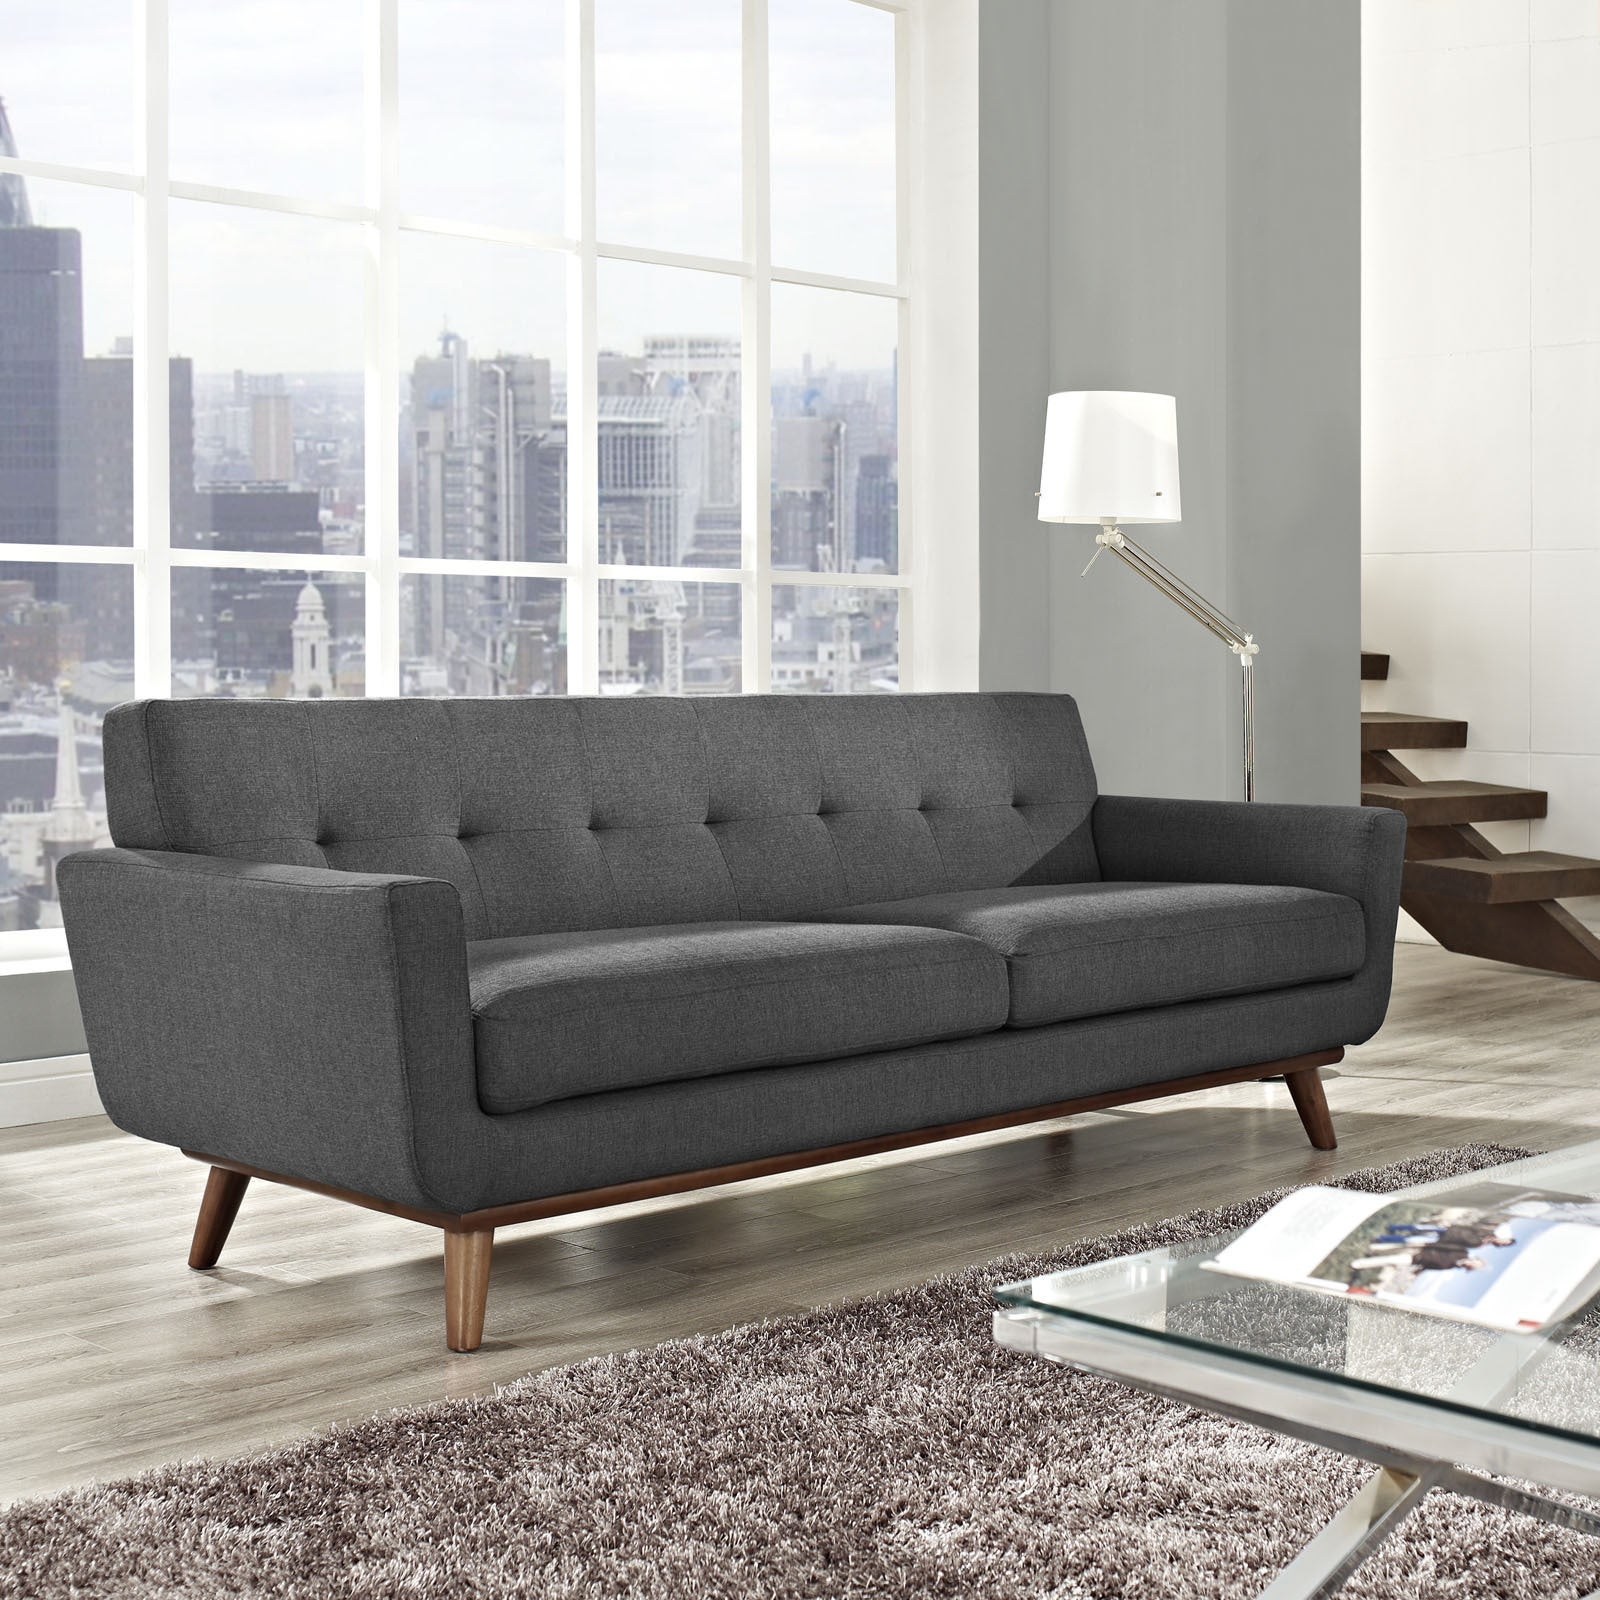 Superb Buy Sofas Couches Online At Overstock Our Best Living Pabps2019 Chair Design Images Pabps2019Com